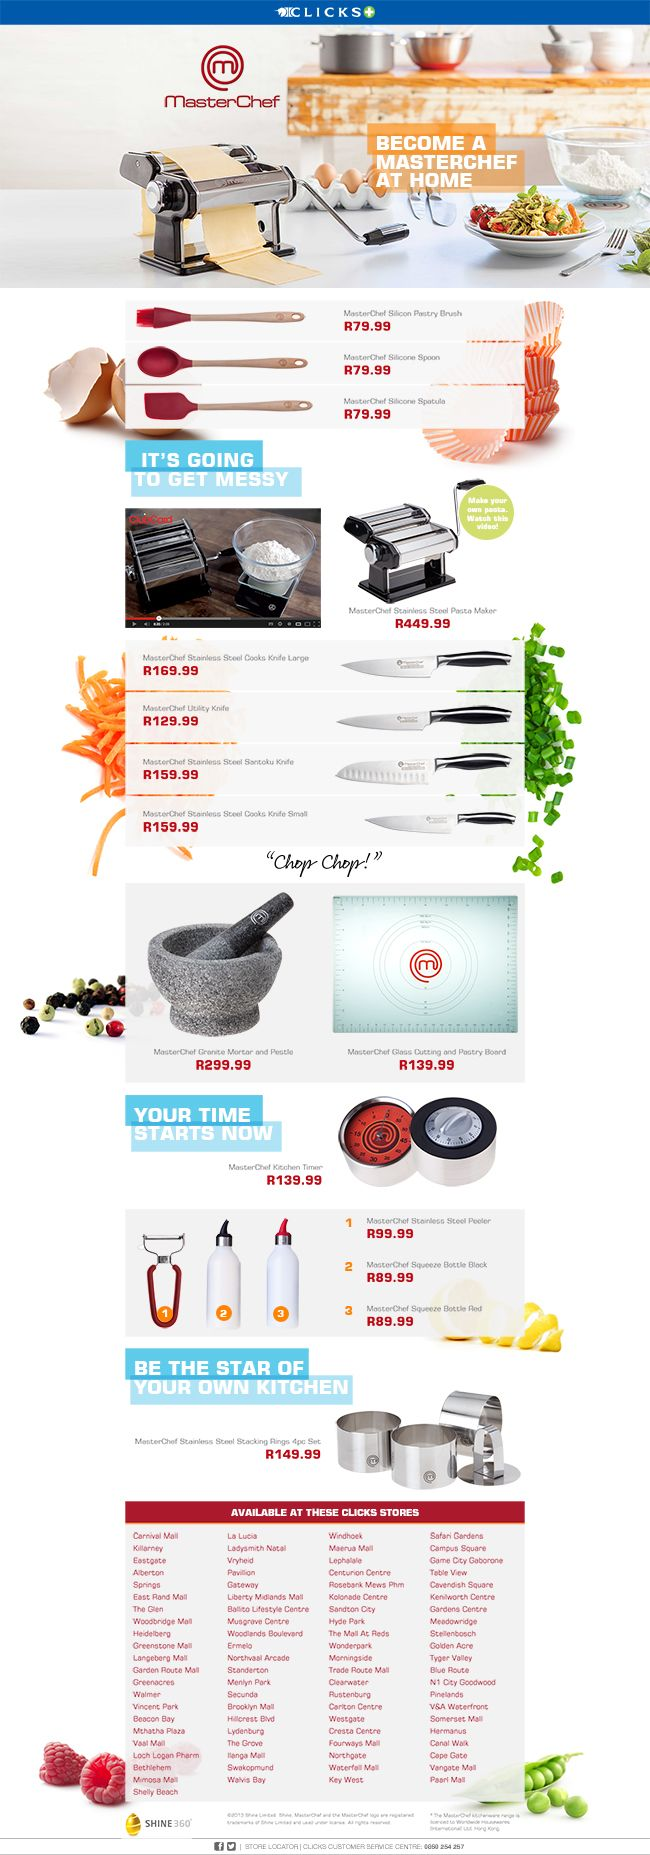 One page website design: MasterChef SA products